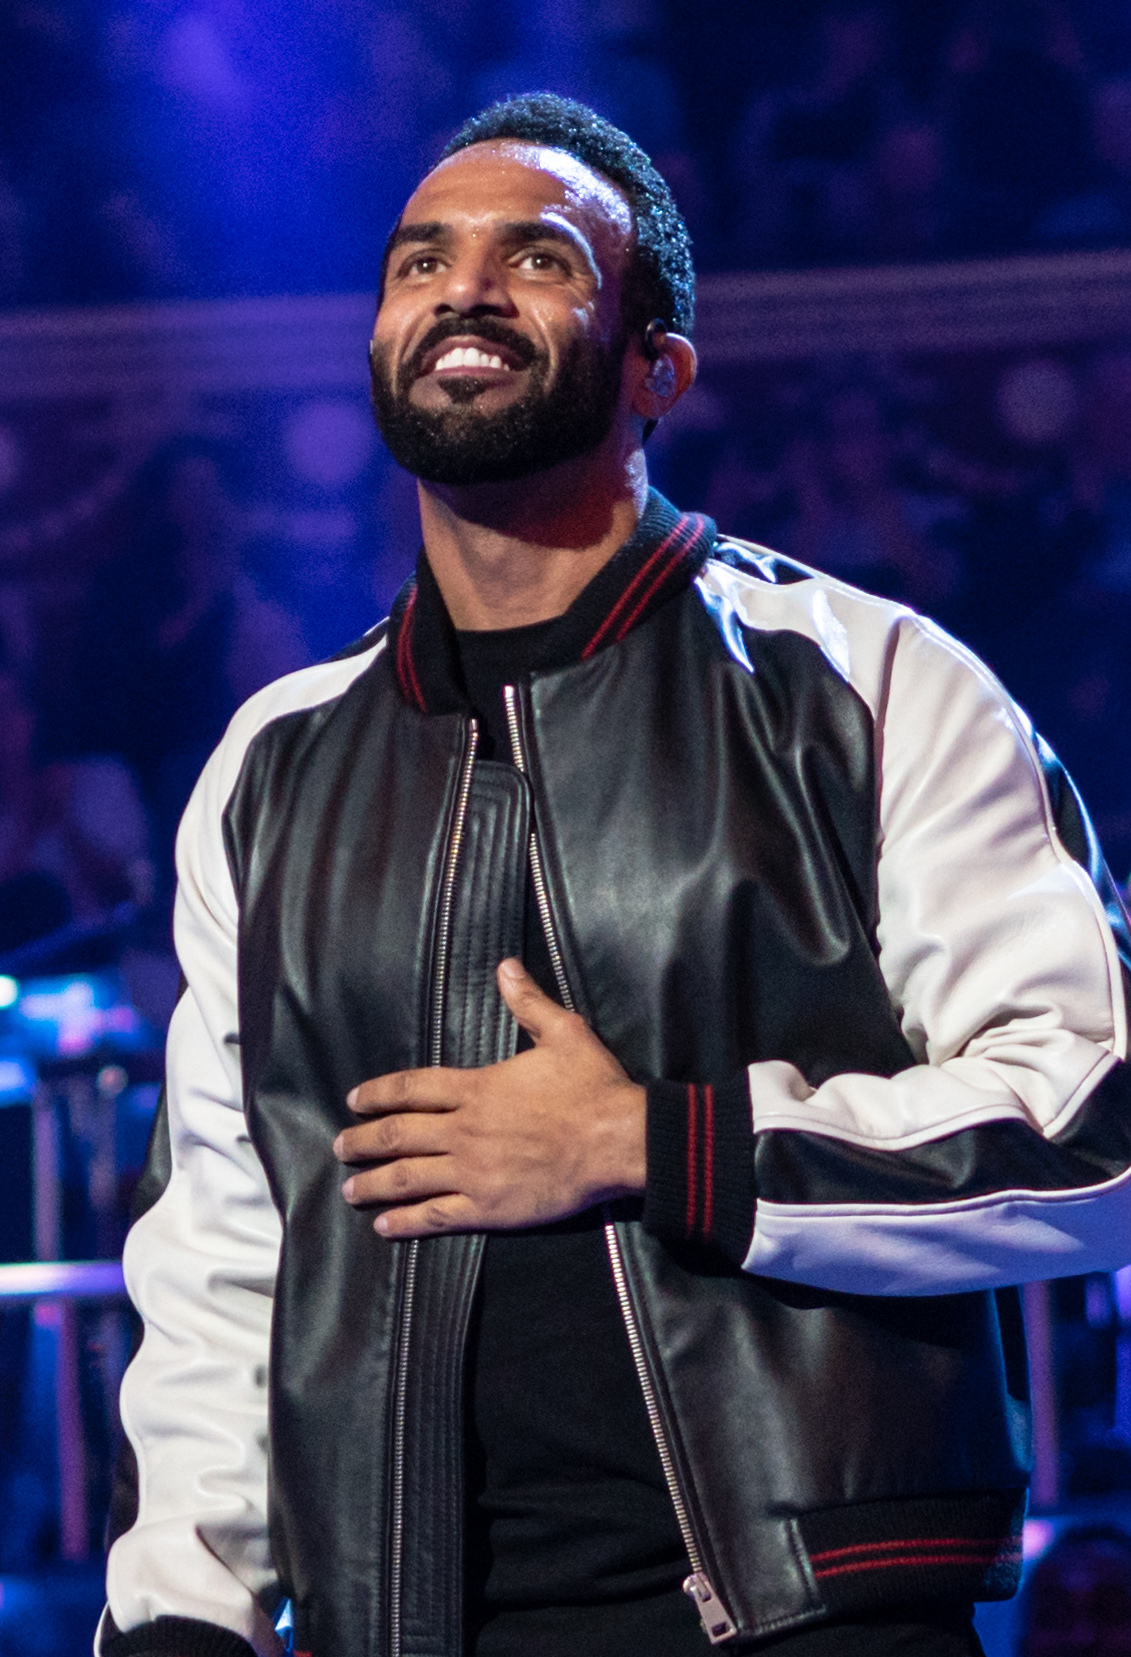 Craig David at The Queens Birthday Party cropped 1 1